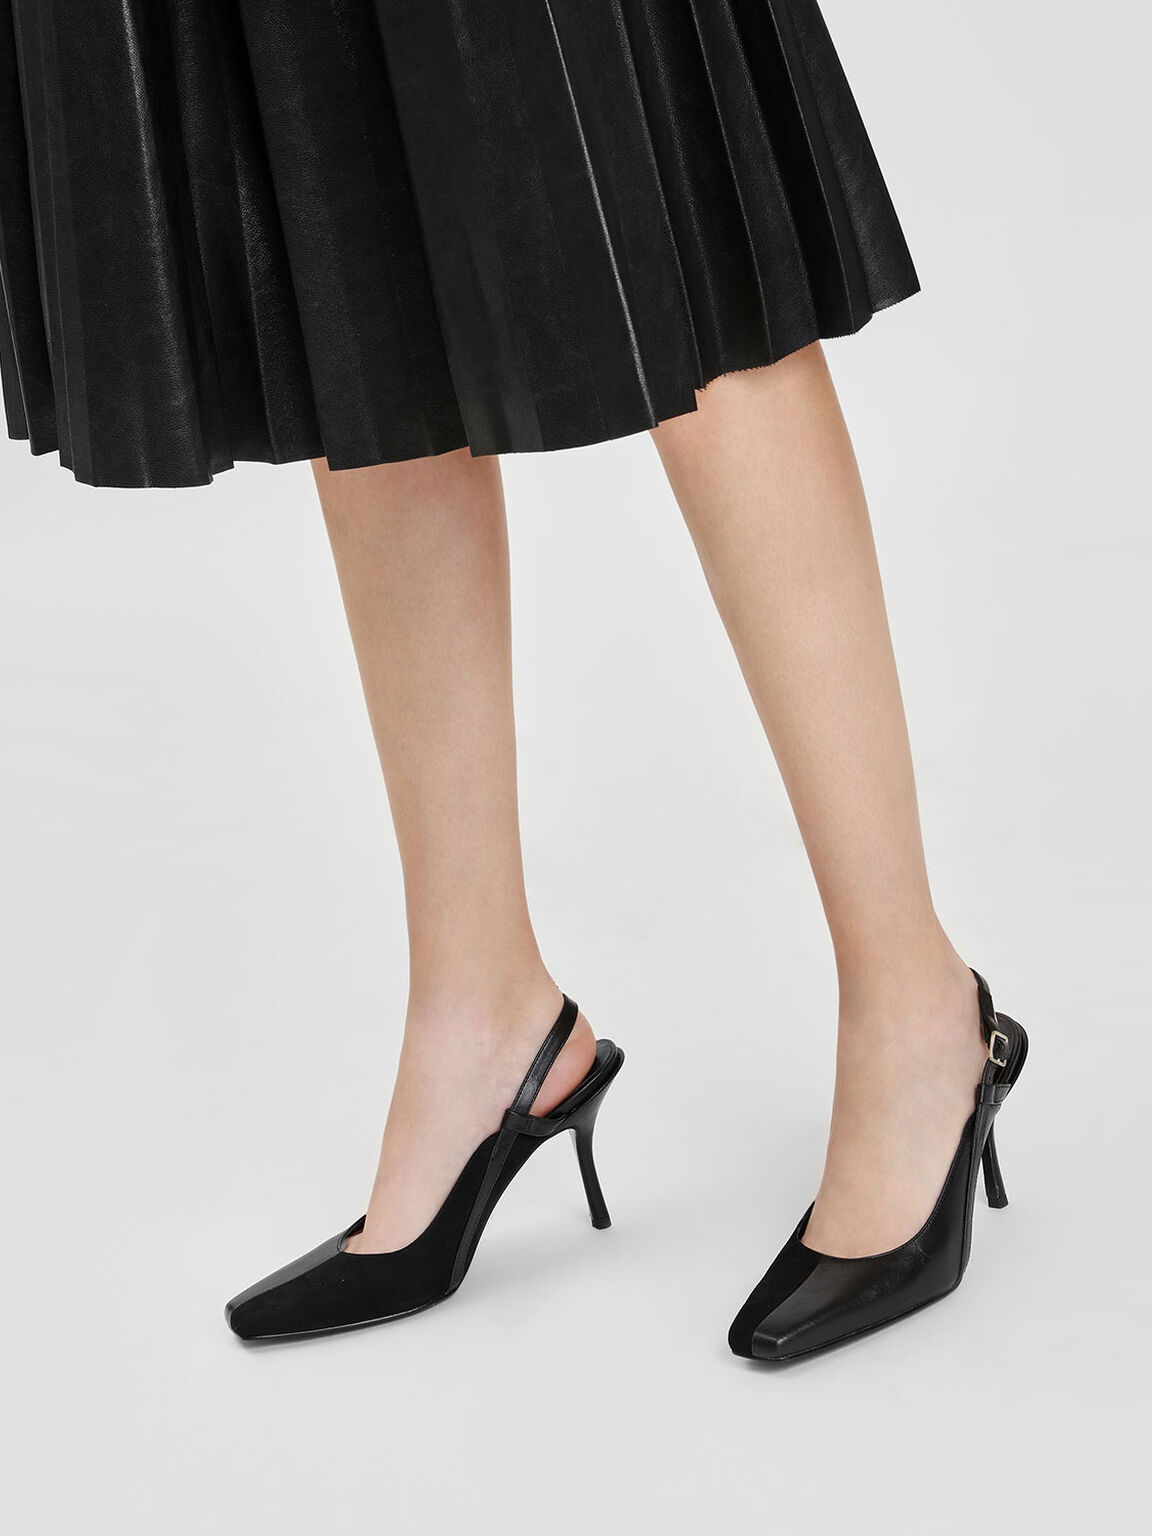 Square Toe Slingbacks, Black, hi-res